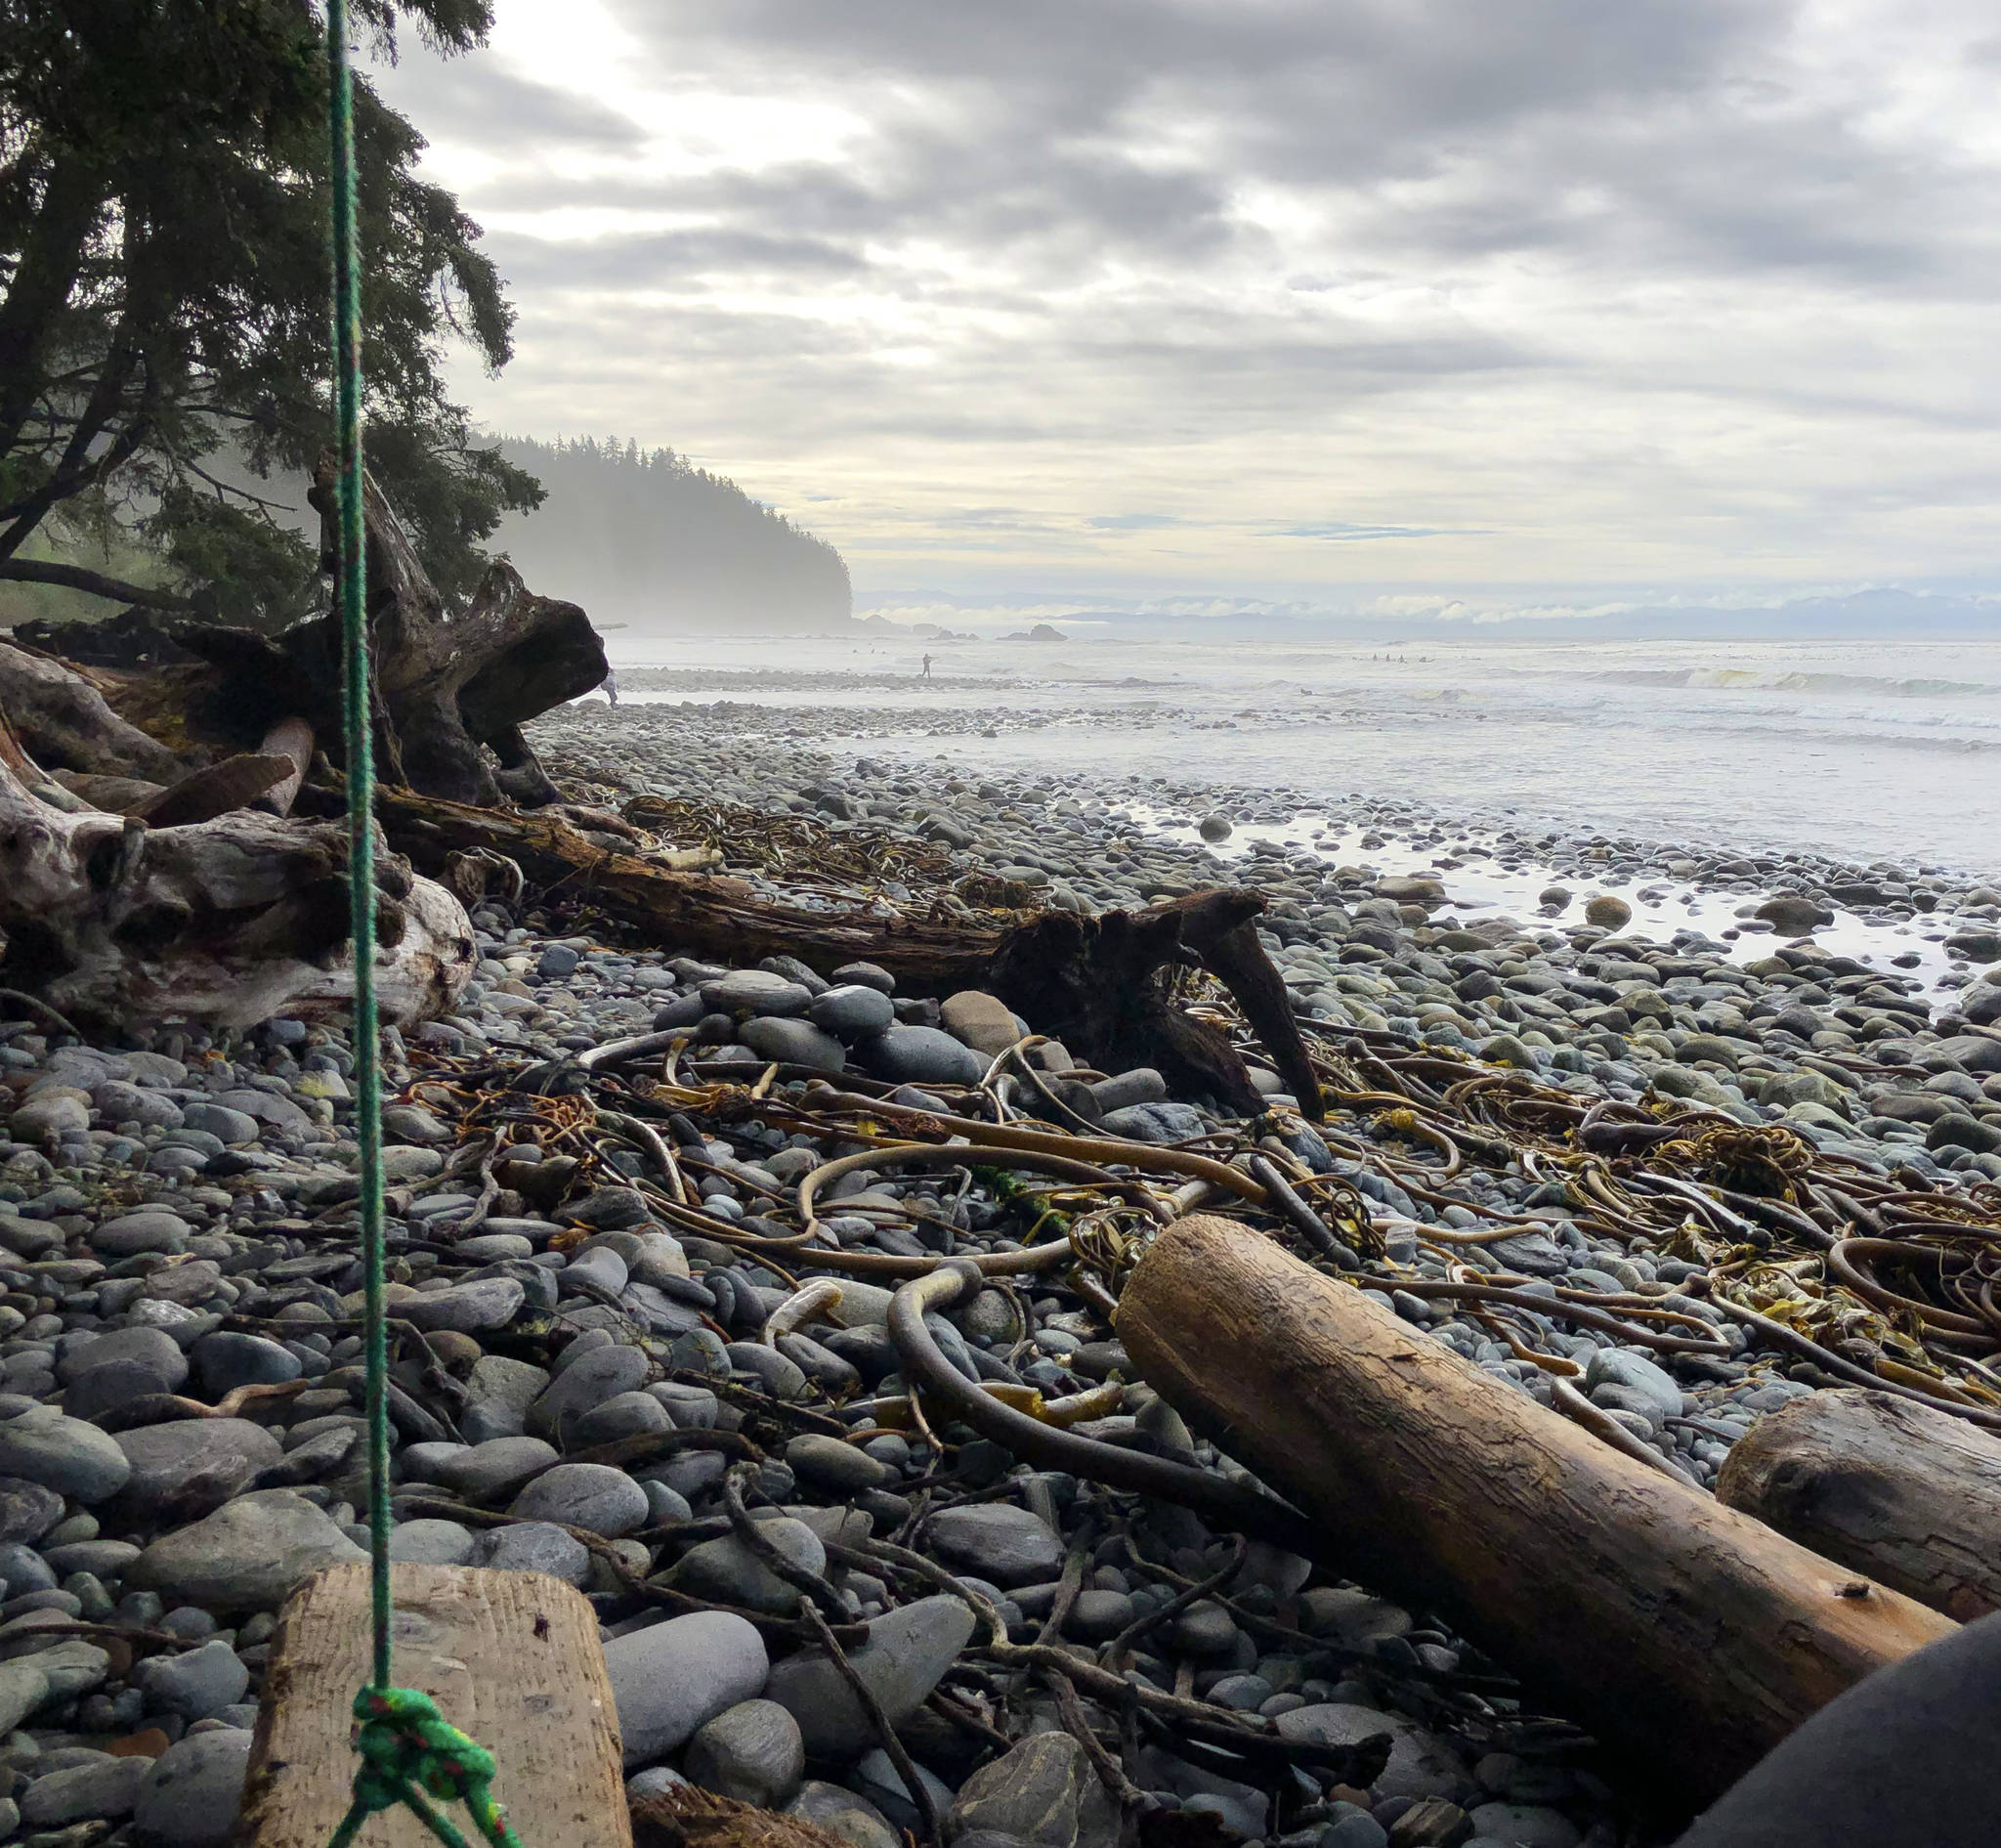 Featuring giant rocks, pounding surf and massive kelp forests, Sombrio is an excellent stop when exploring Southern Vancouver Island. Amy Attas photo.